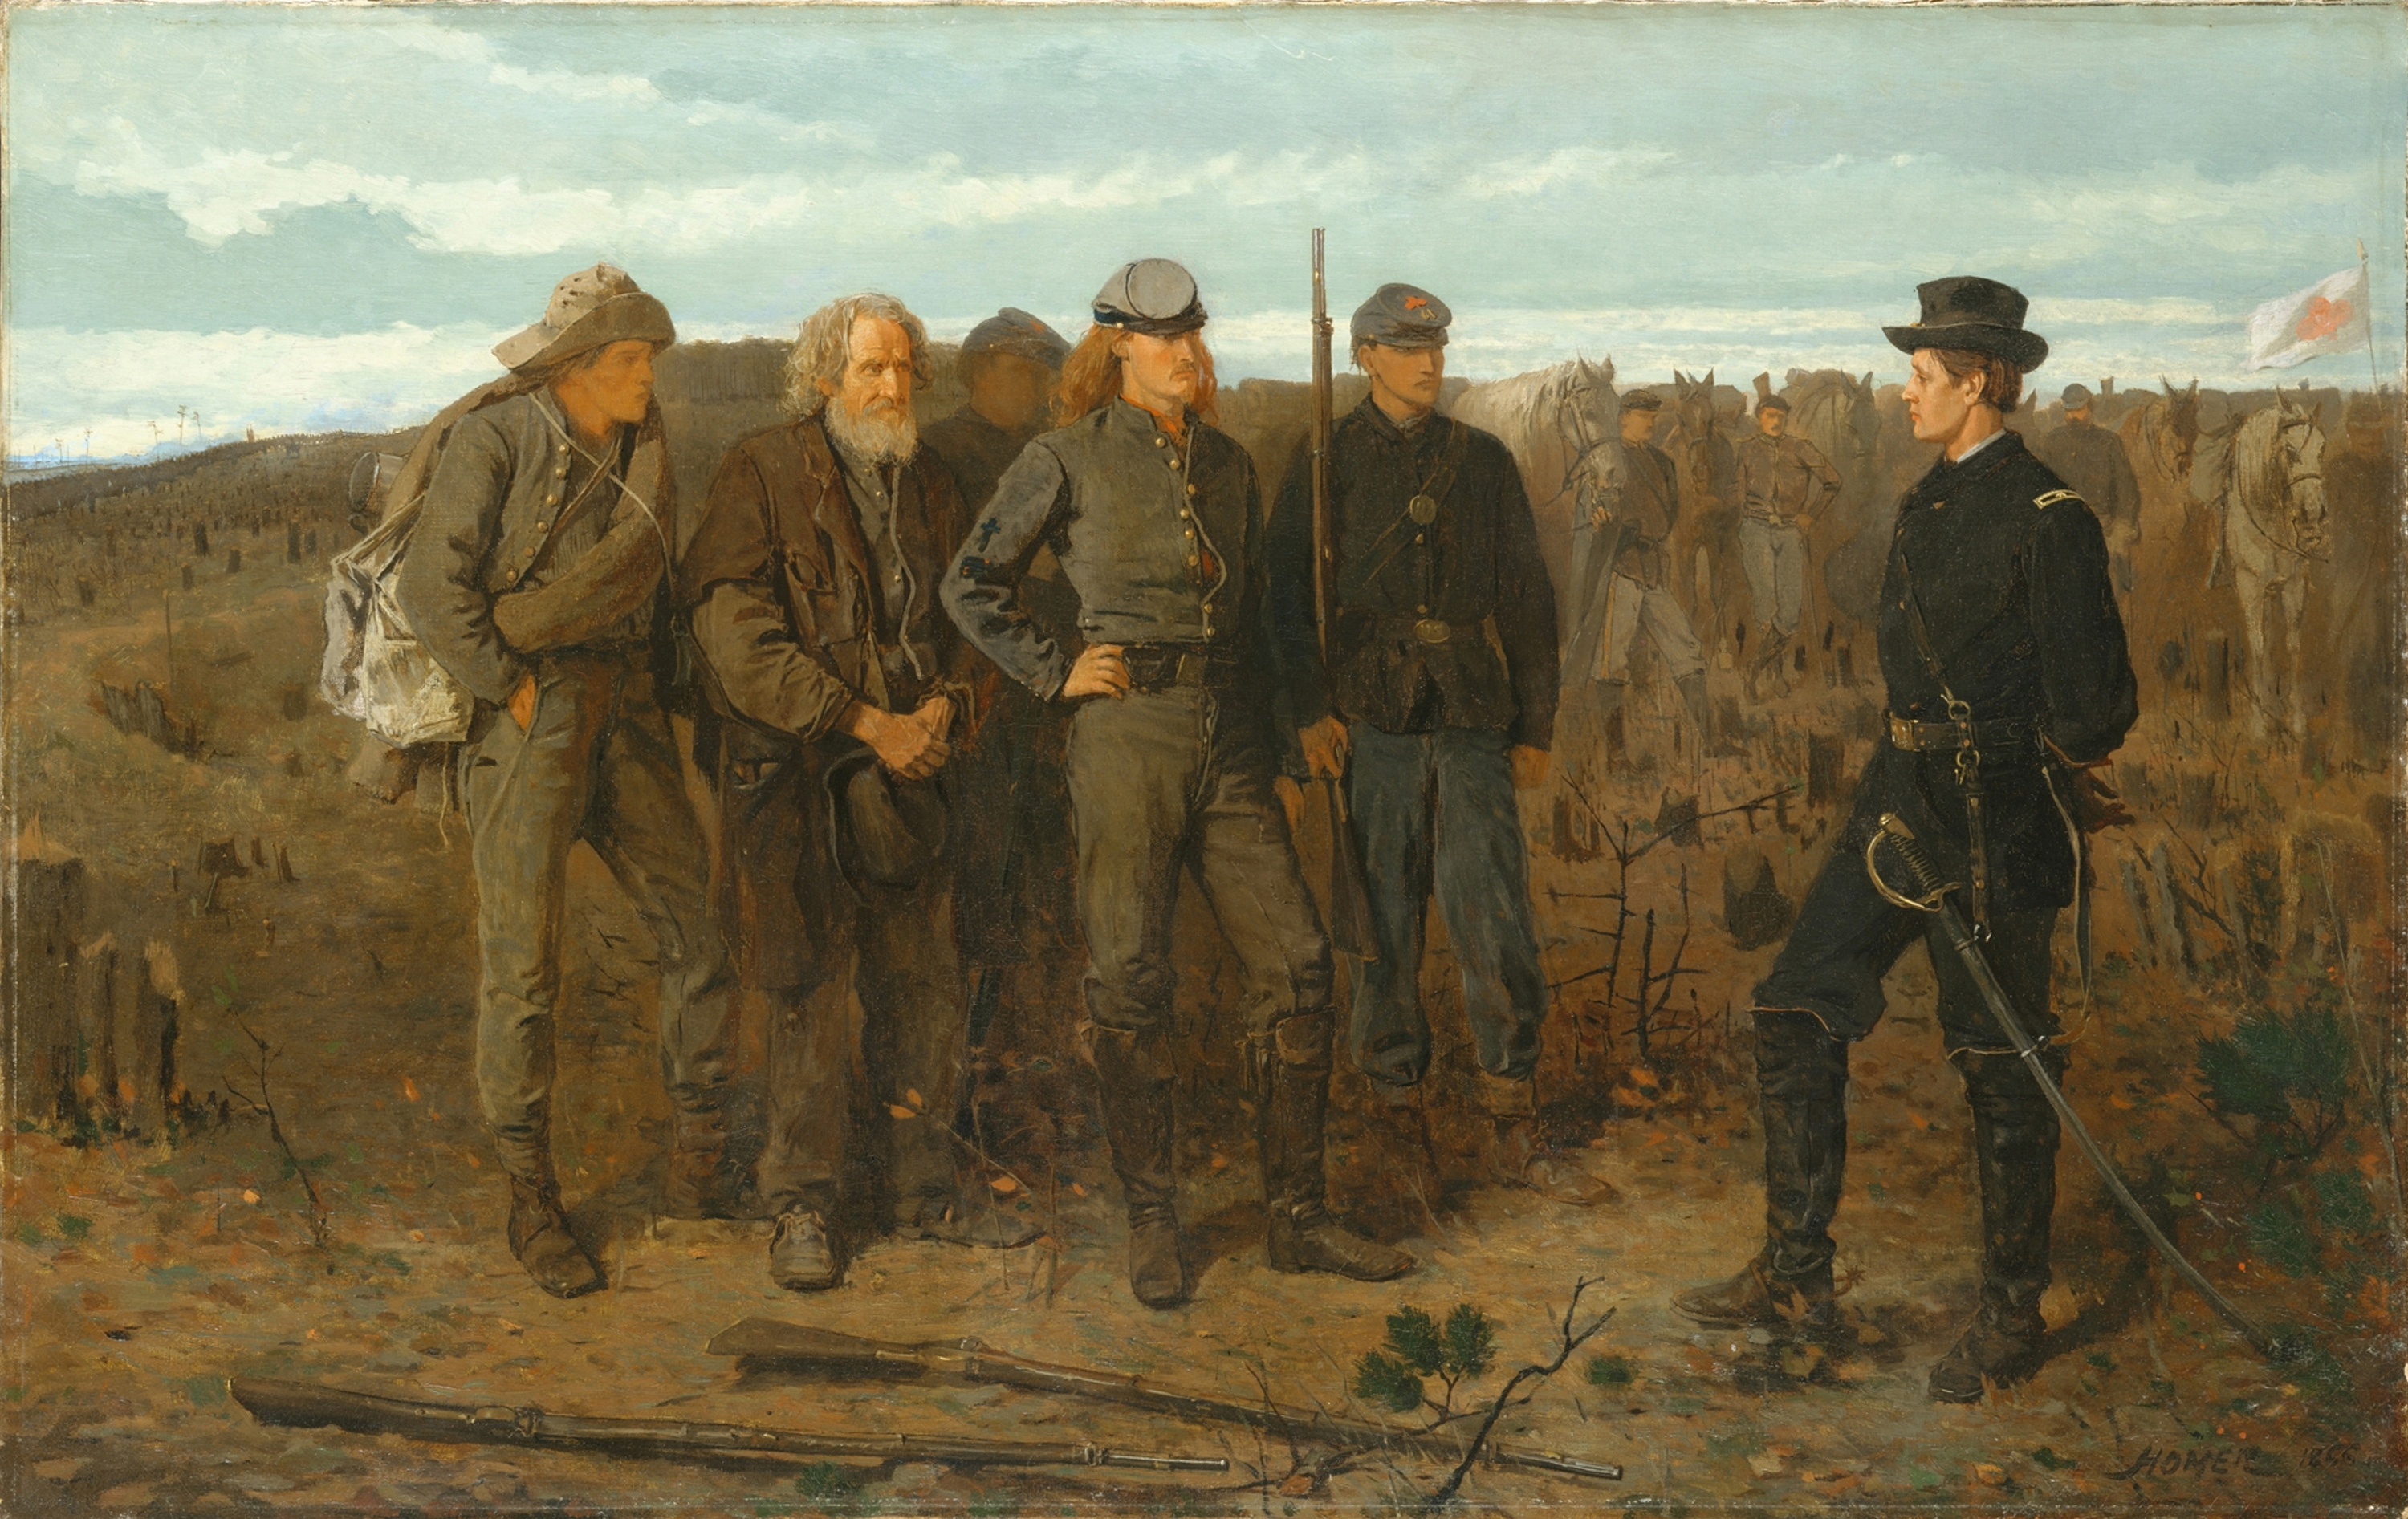 Prisoners from the Front, 1866 — Winslow Homer, Metropolitan Museum of Art